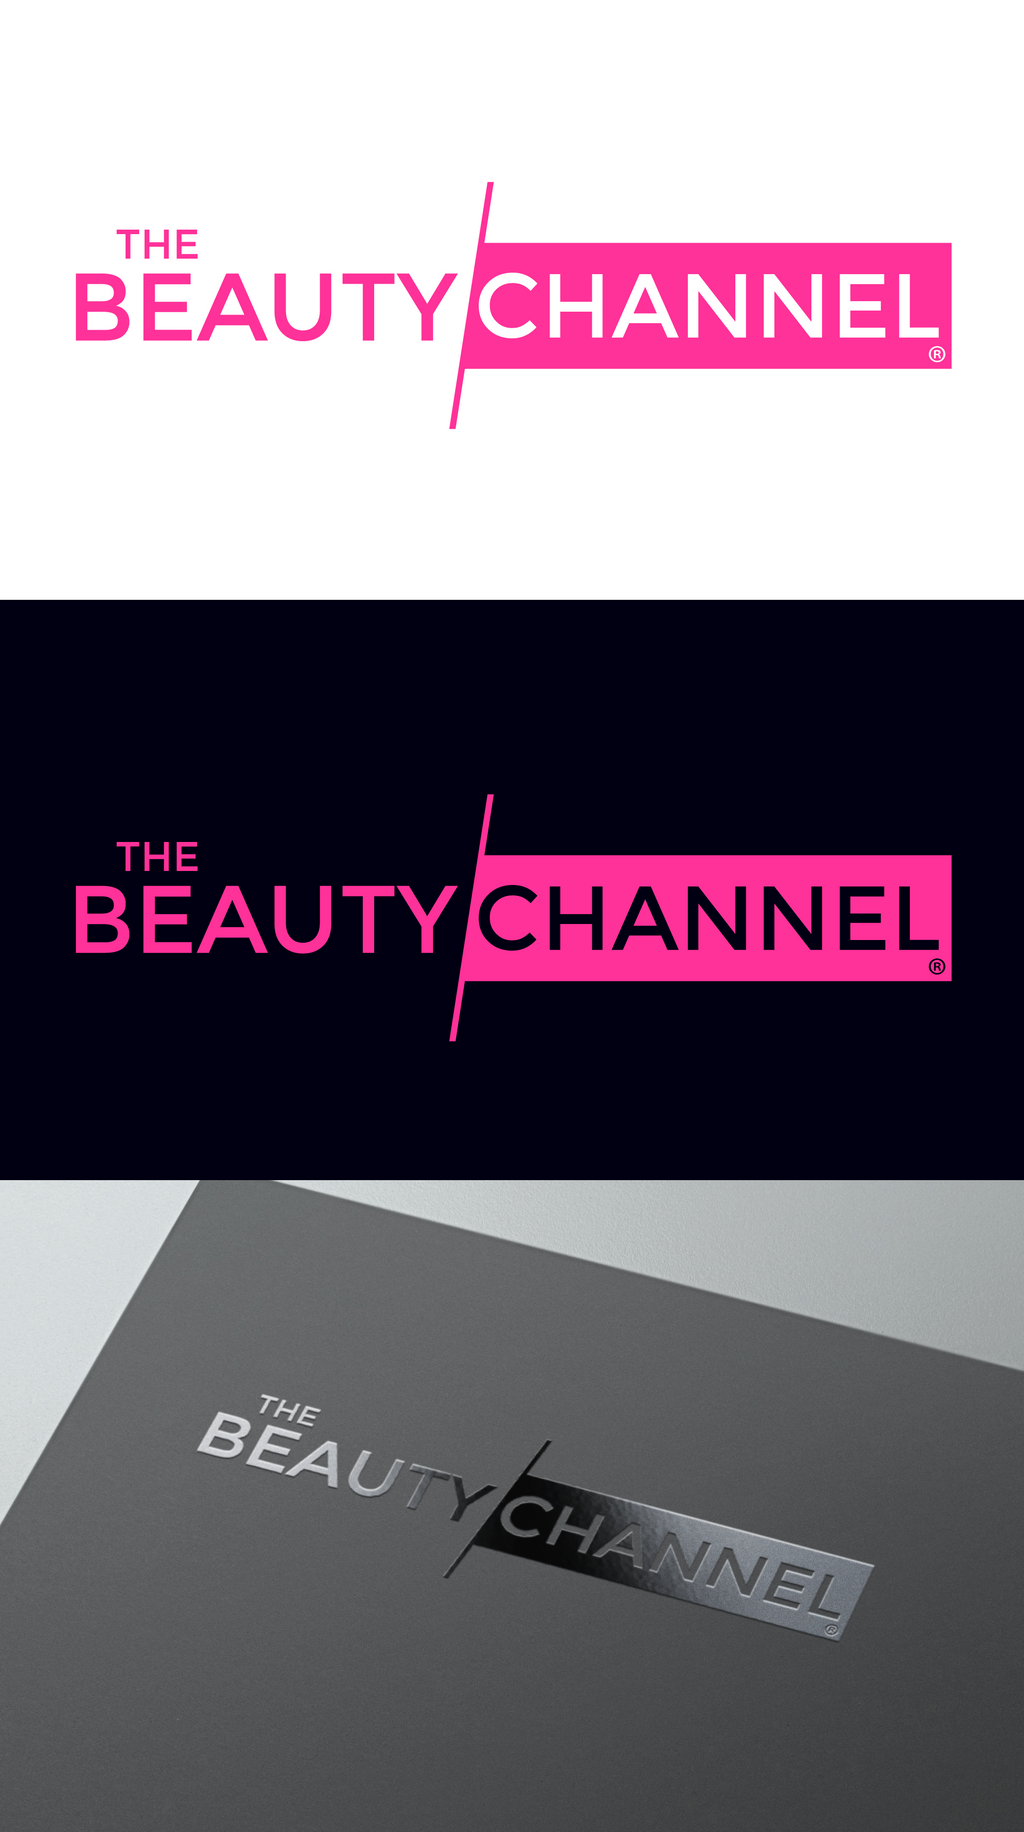 The Beauty Channel 2 By ANTI-MADRIDISTAA On DeviantArt